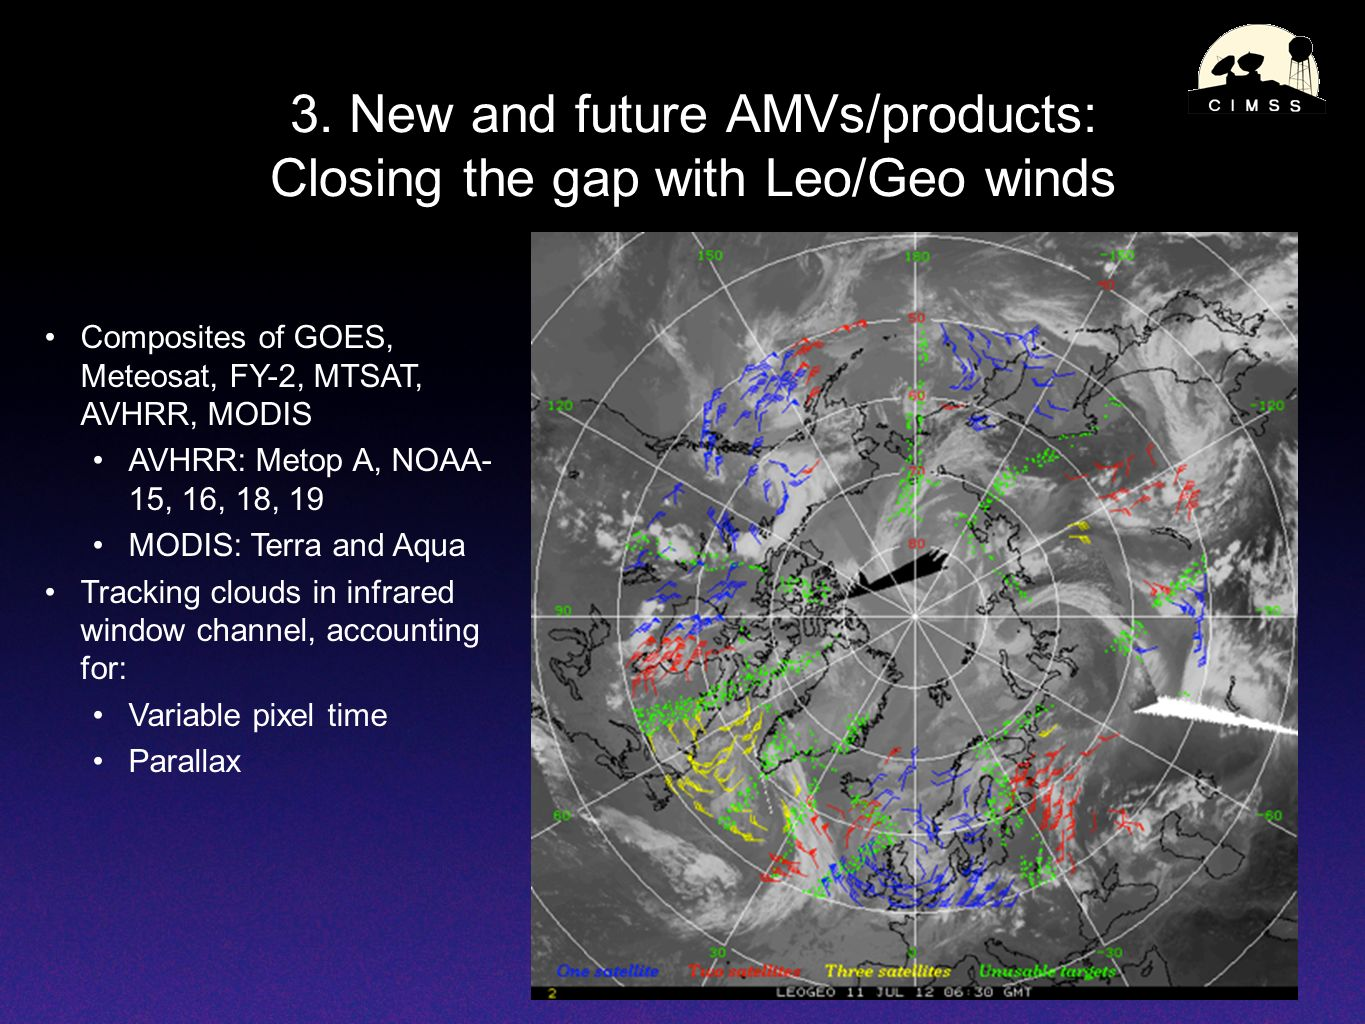 3. New and future AMVs/products: Closing the gap with Leo/Geo winds Composites of GOES, Meteosat, FY-2, MTSAT, AVHRR, MODIS AVHRR: Metop A, NOAA- 15,